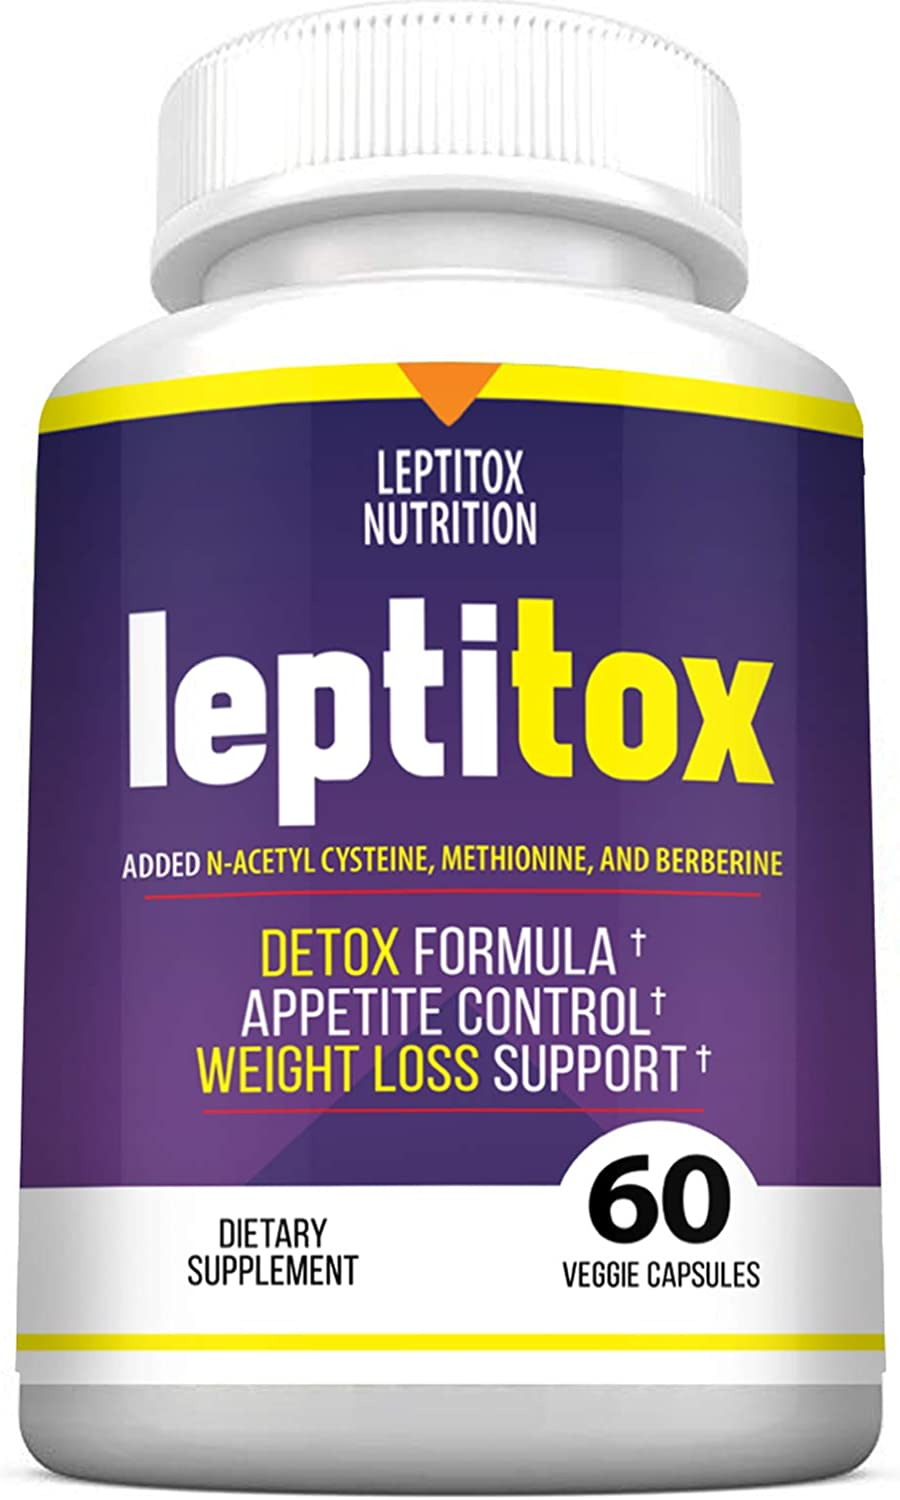 Leptitox How Does It Work